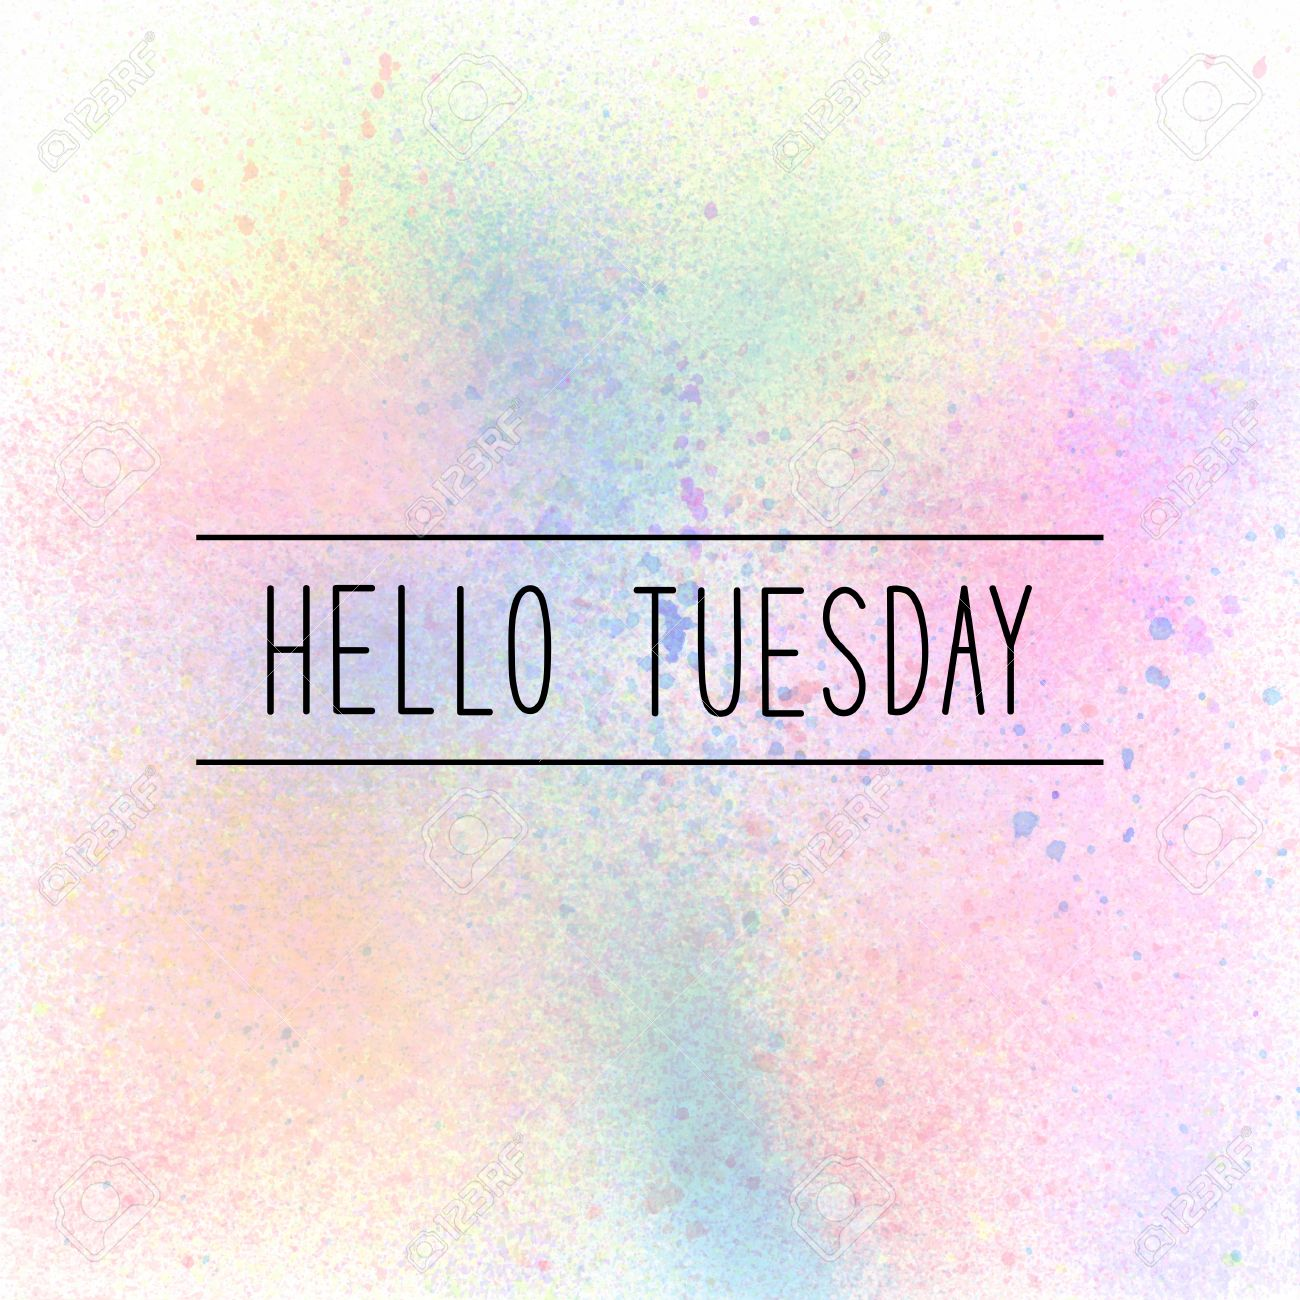 63374577-hello-tuesday-text-on-pastel-wa